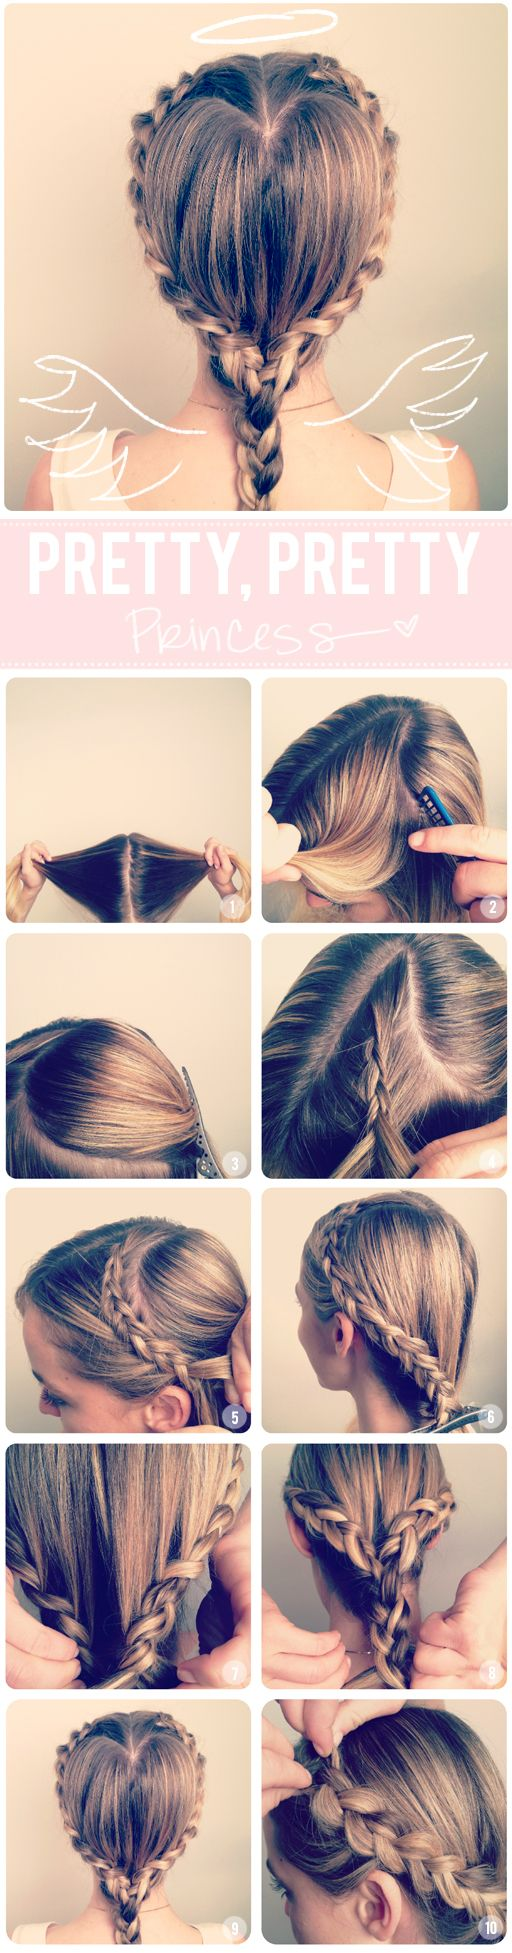 best hair styles i wish i could do images on pinterest cute